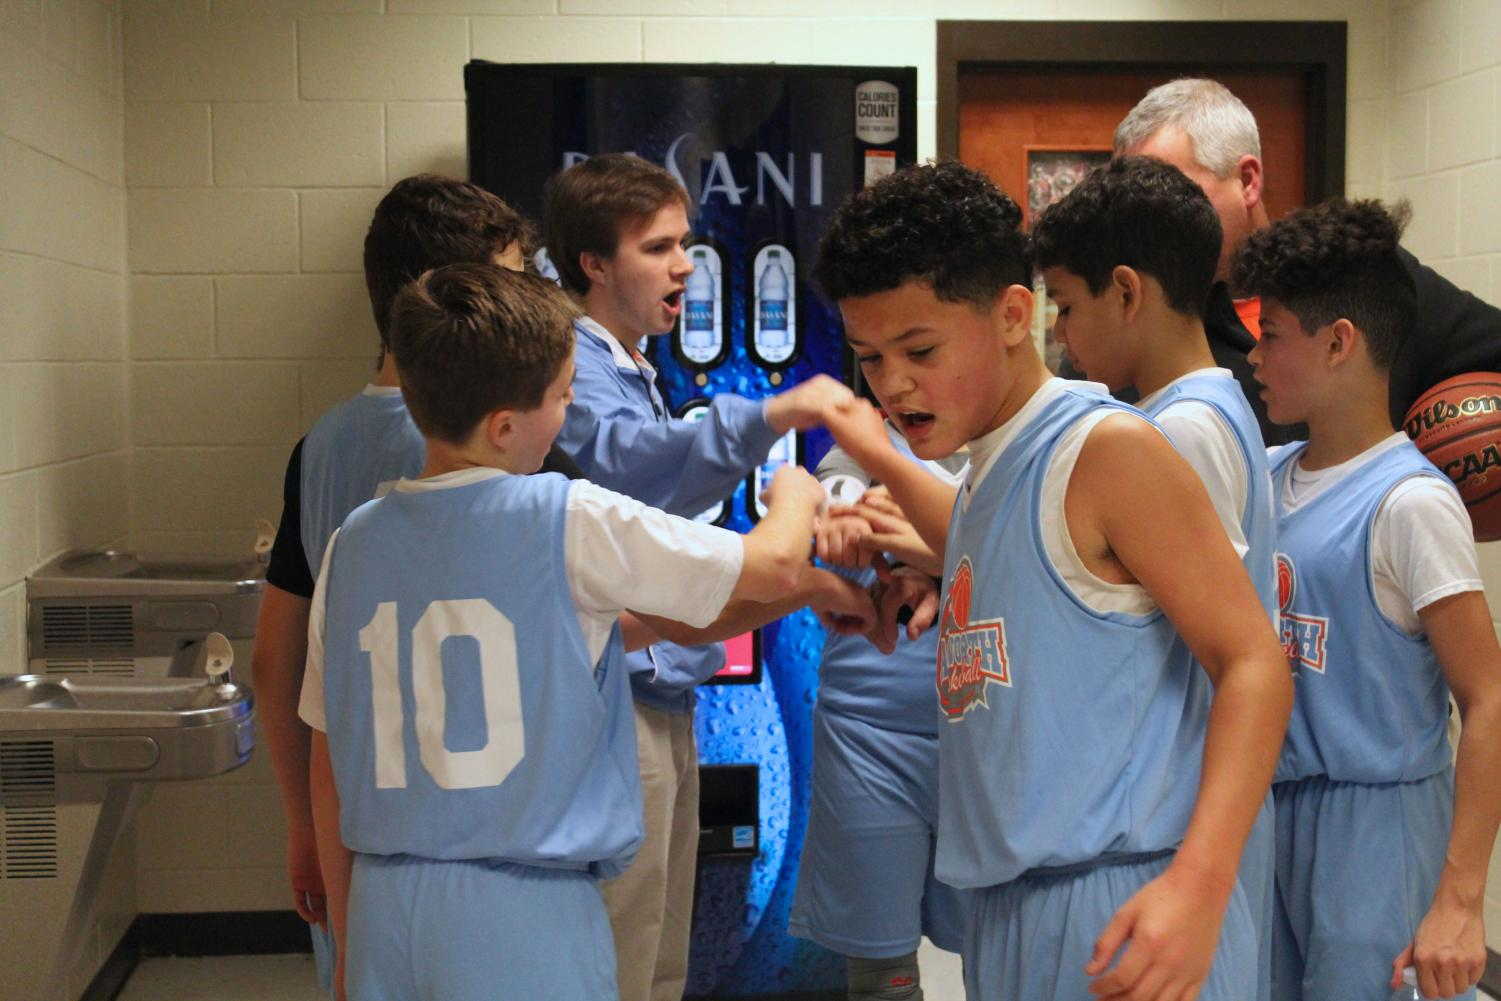 """After their impressive win against the Tigers on January 13, senior Turner Markwalter ended the day with a powerful pep talk. He motivated the team and prepared them for the next practice. """"I can't wait to see how my team progresses and develops throughout this season,"""" Markwalter said."""